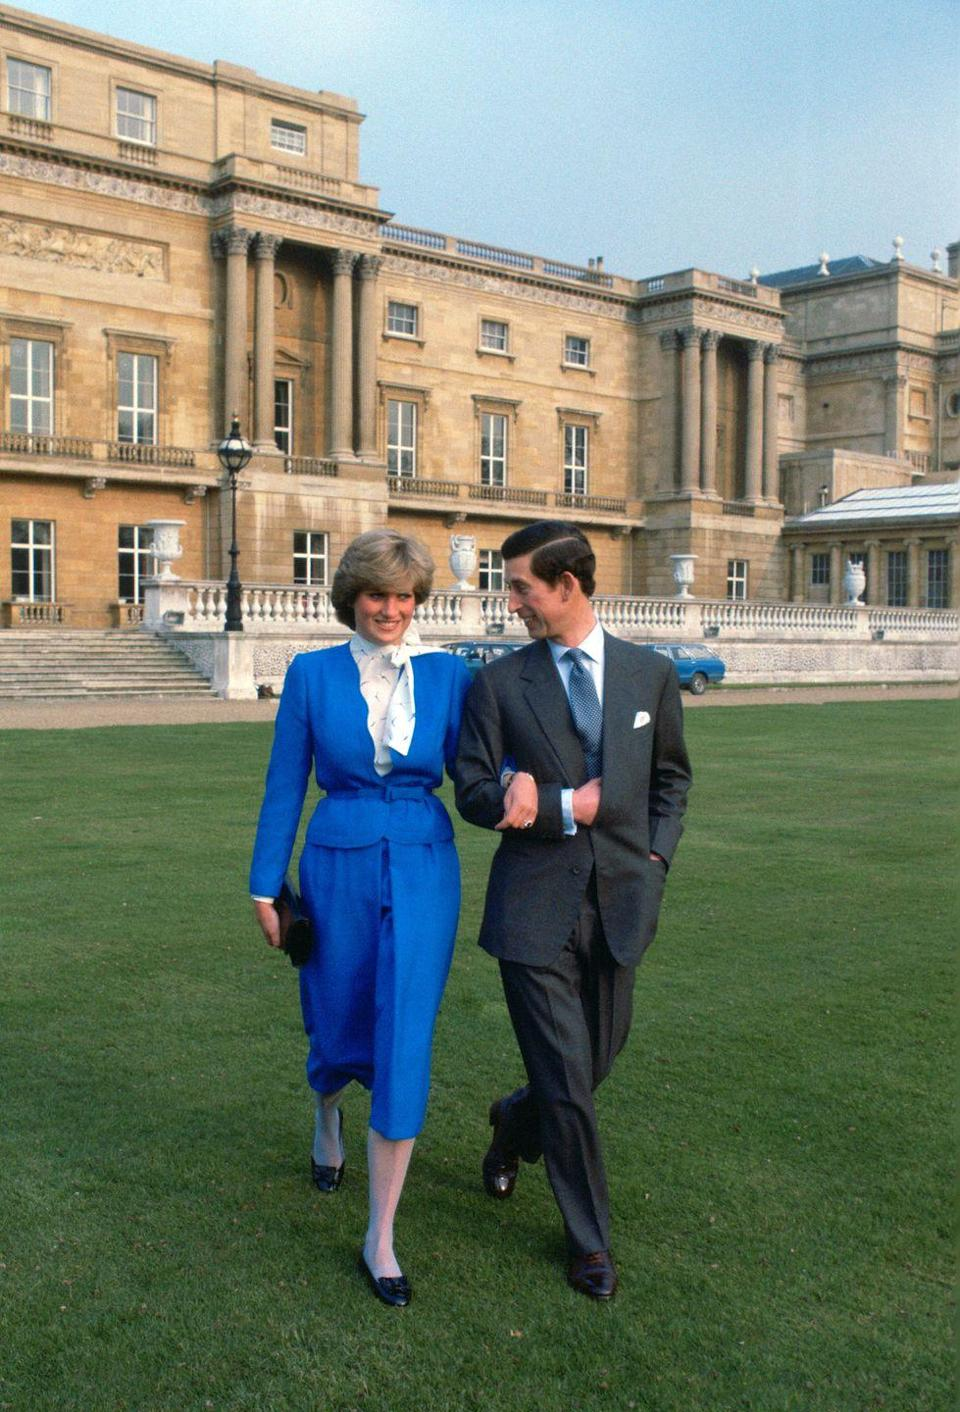 <p>The engagement photographs were taken outside at Buckingham Palace.</p>